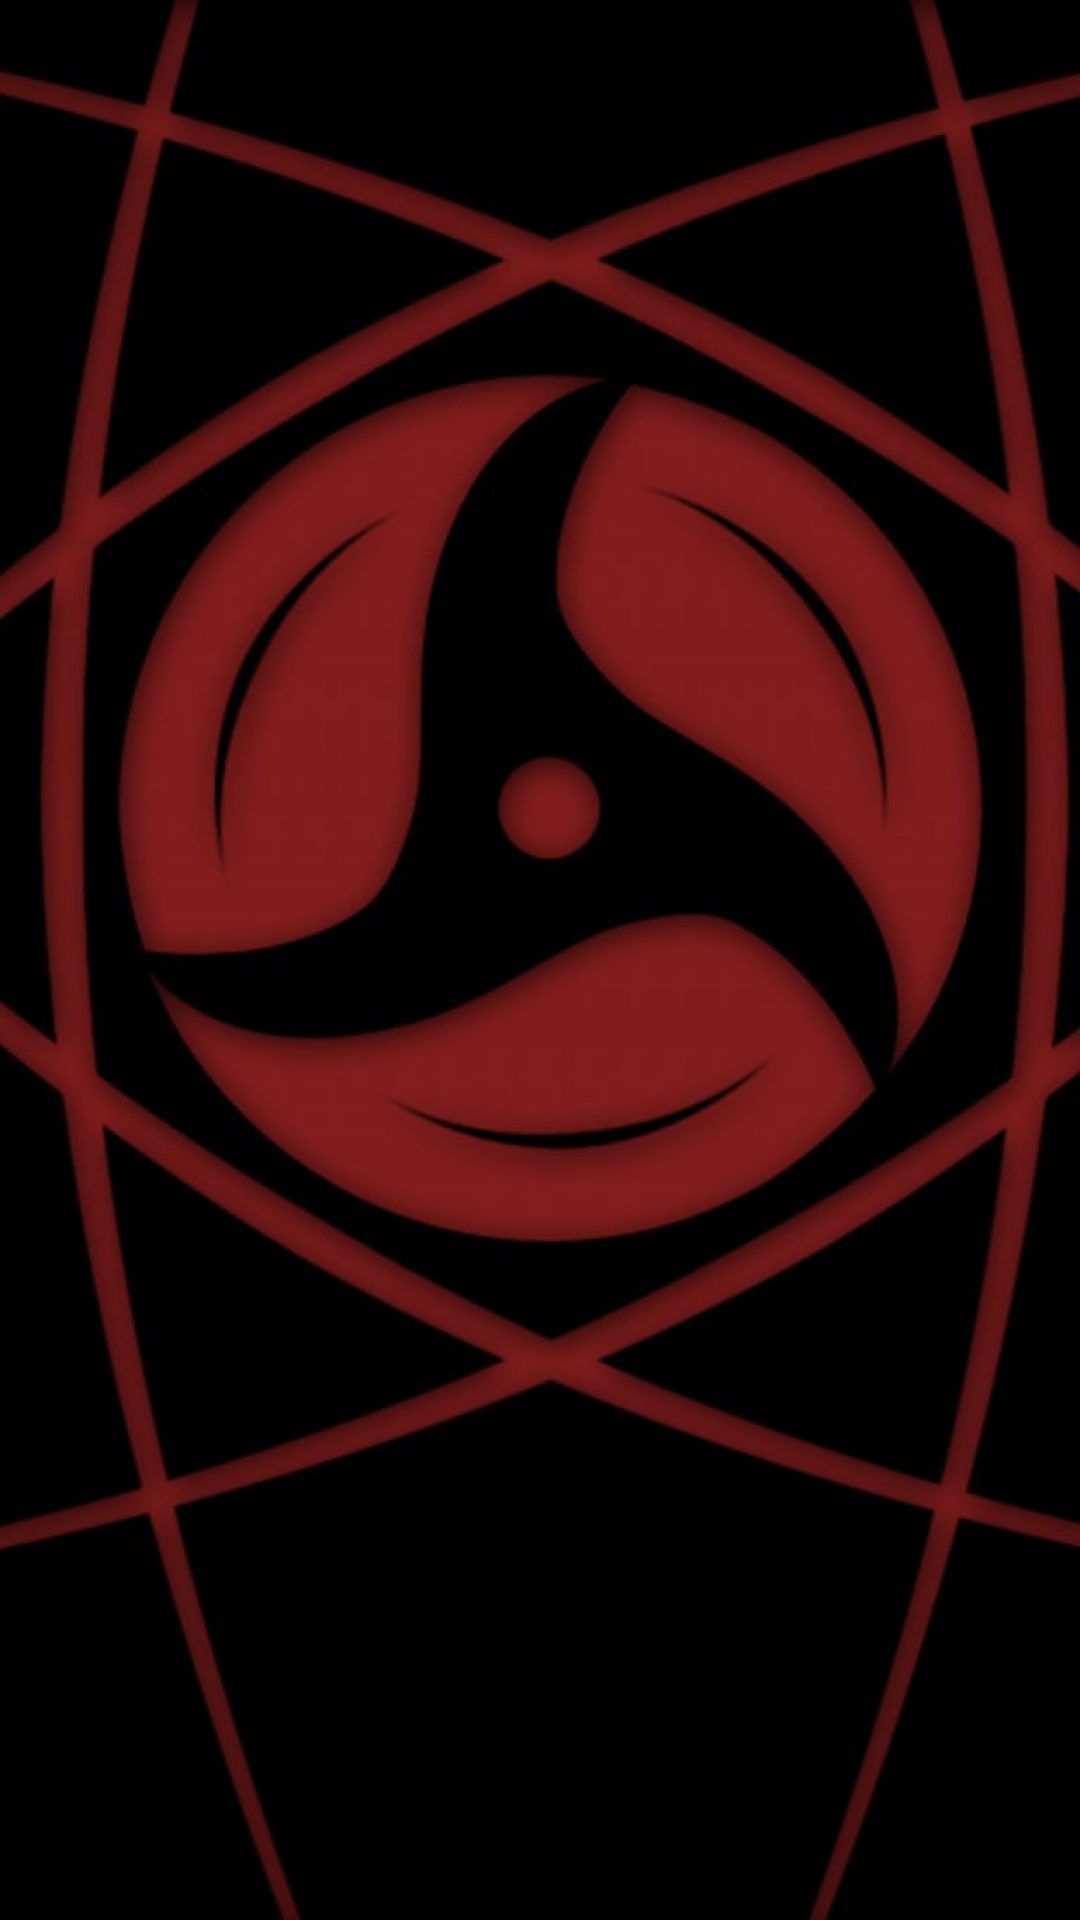 1080x1920 Sharingan - Wallpapers for iPhone